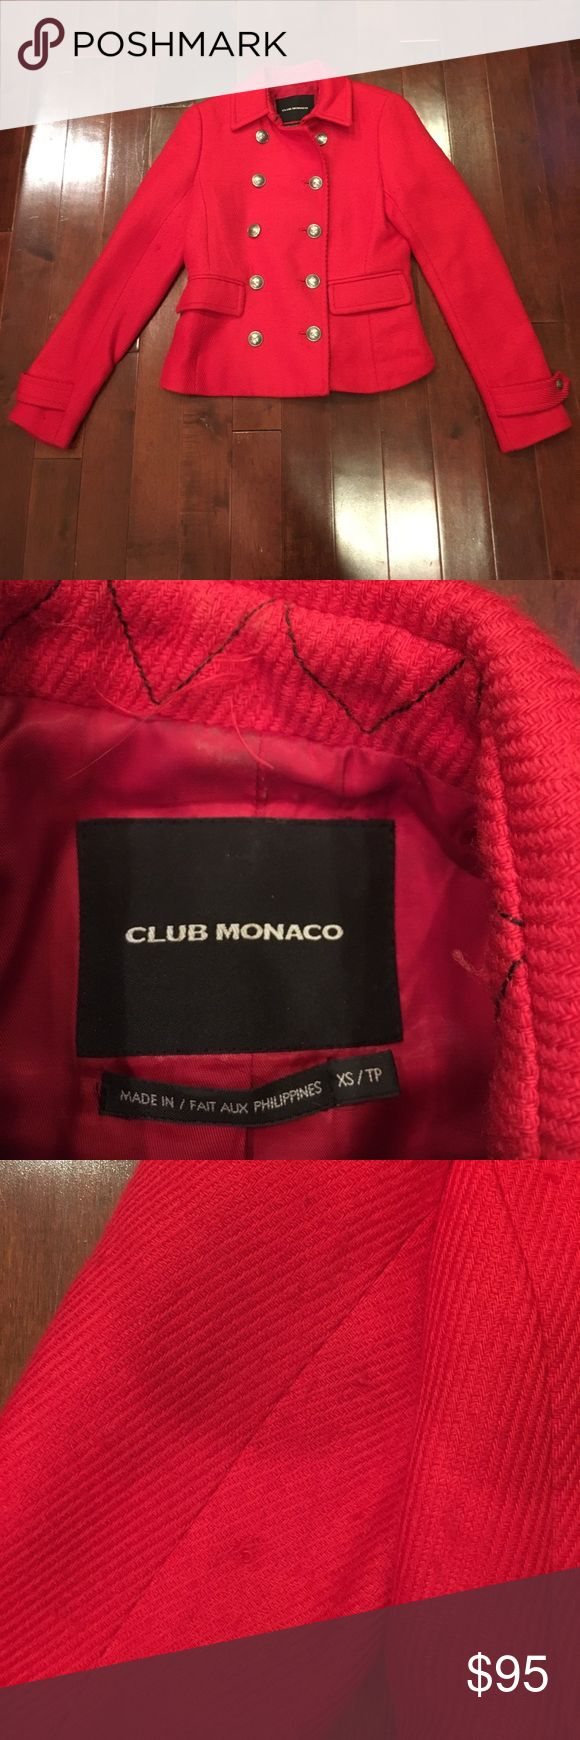 Club Monaco red pea coat jacket Has some wear. Some pulls and spots throughout. Vibrant red color. Club Monaco Jackets & Coats Pea Coats